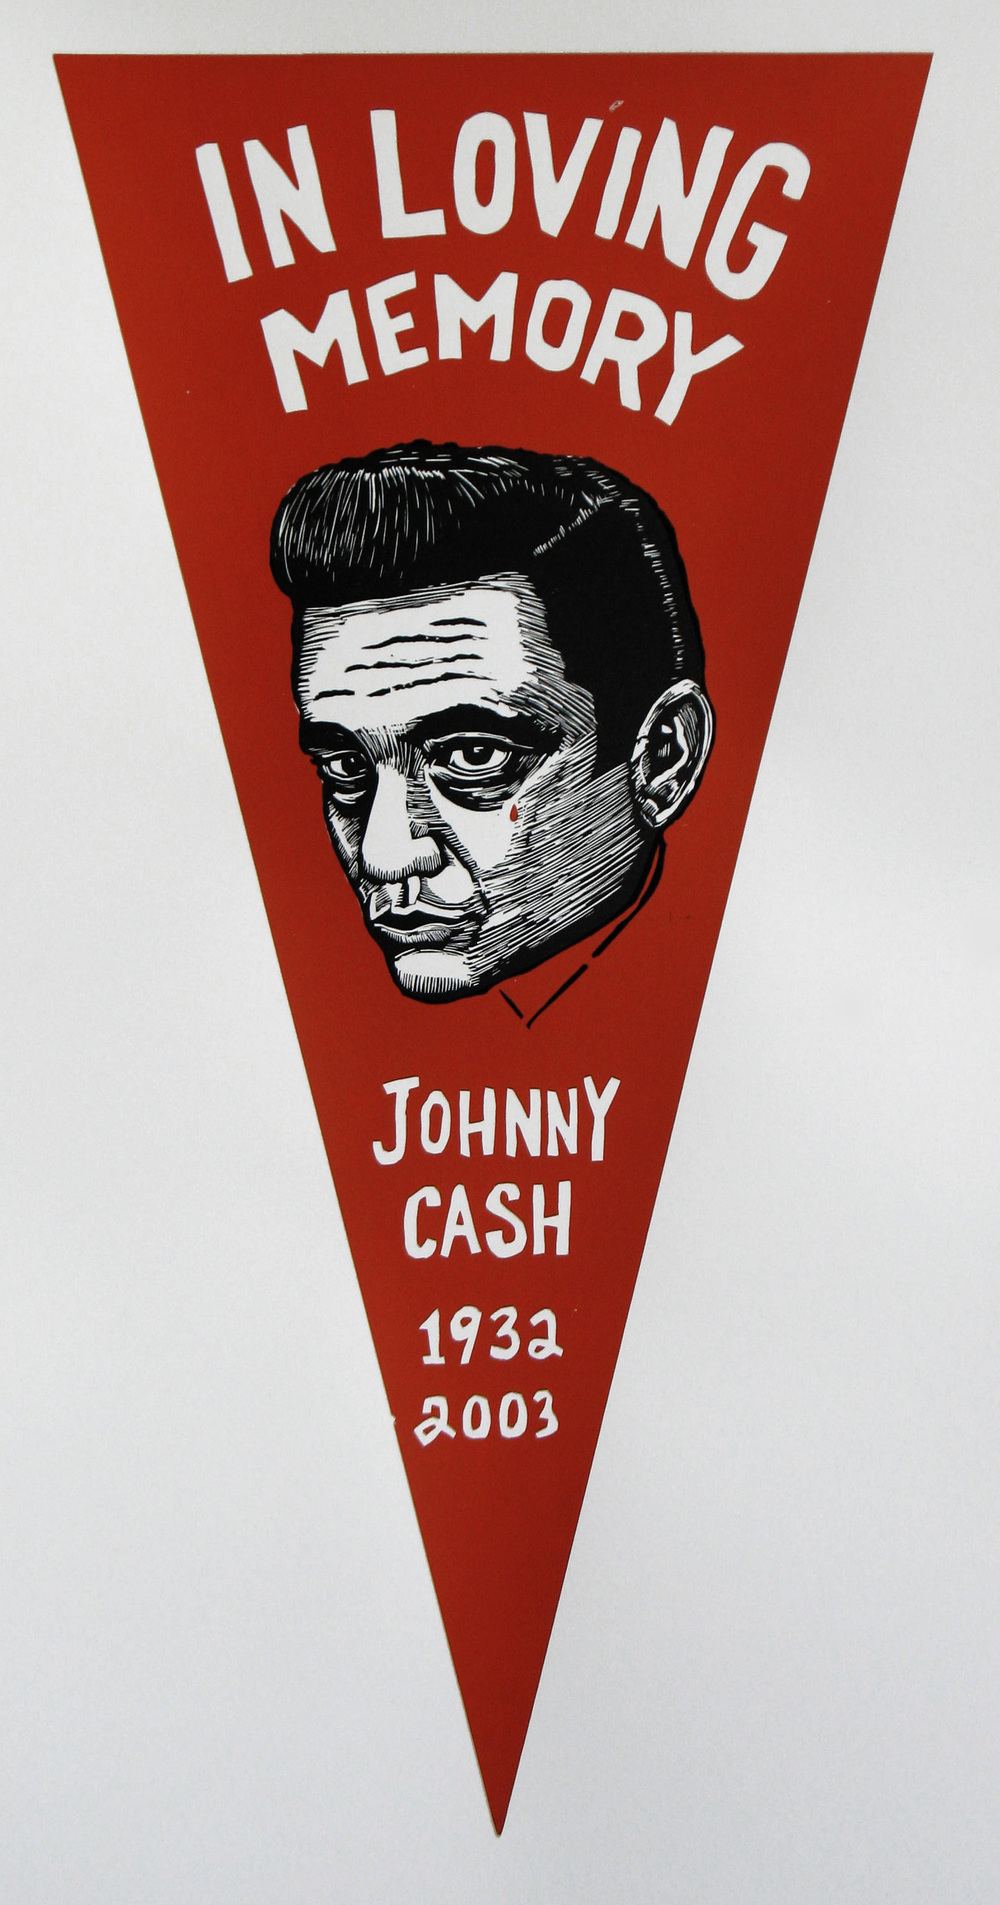 rip-johnny-cash.jpg